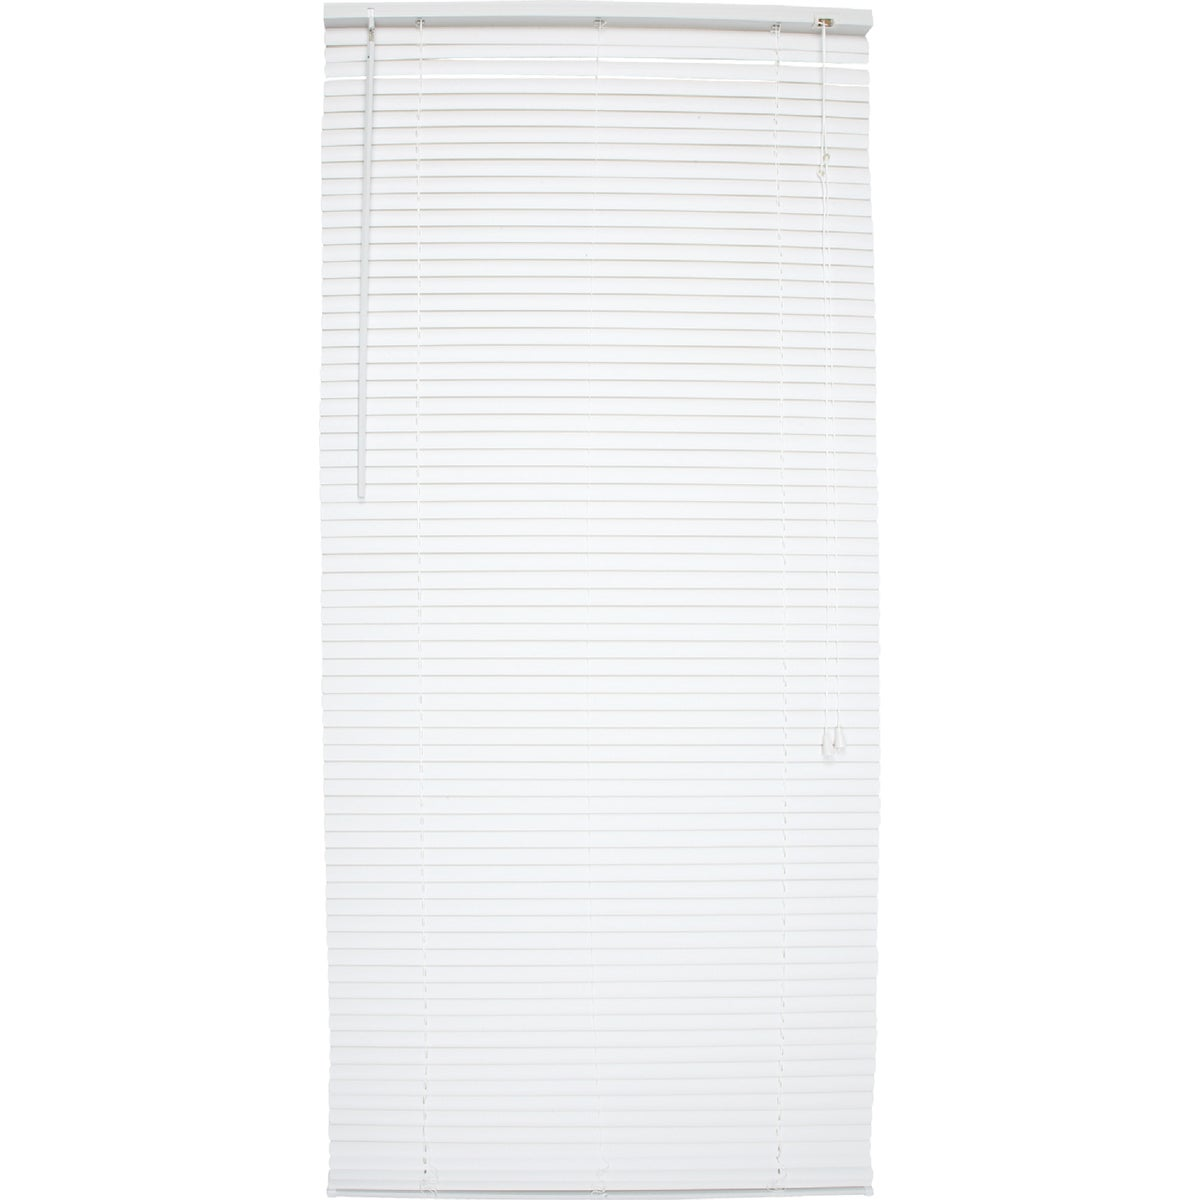 50X64 WHITE MINI BLIND - 615980 by Lotus Wind Incom